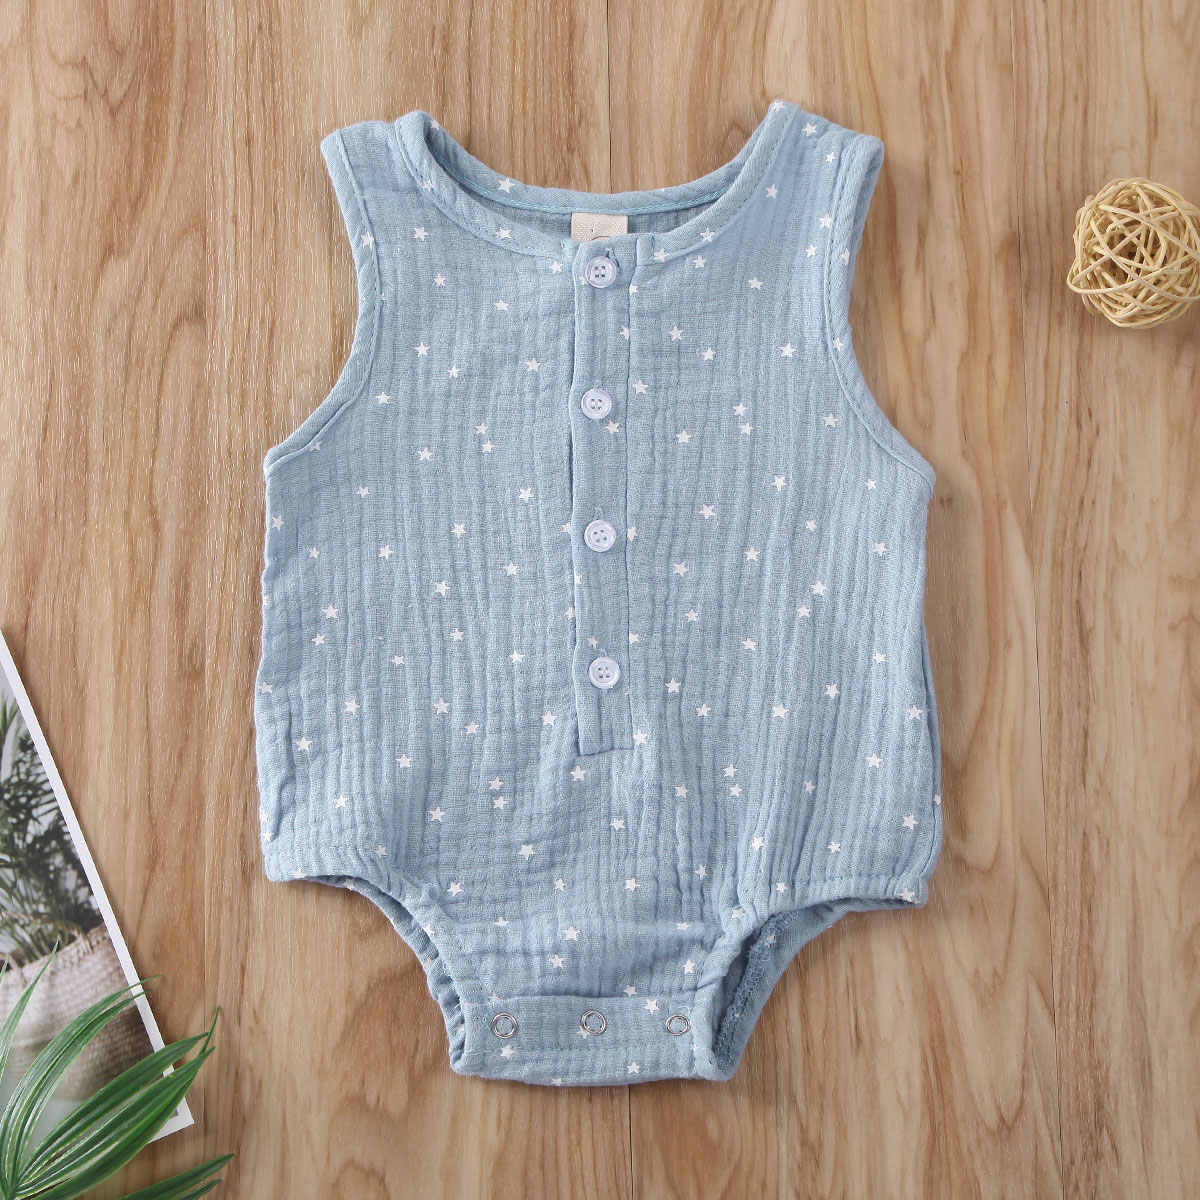 2020 Baby Summer Clothing Newborn Infant Baby Girls Boys Clothes Cotton Linen Jumpsuit Bodysuit Sleeveless Outfit 0-12M